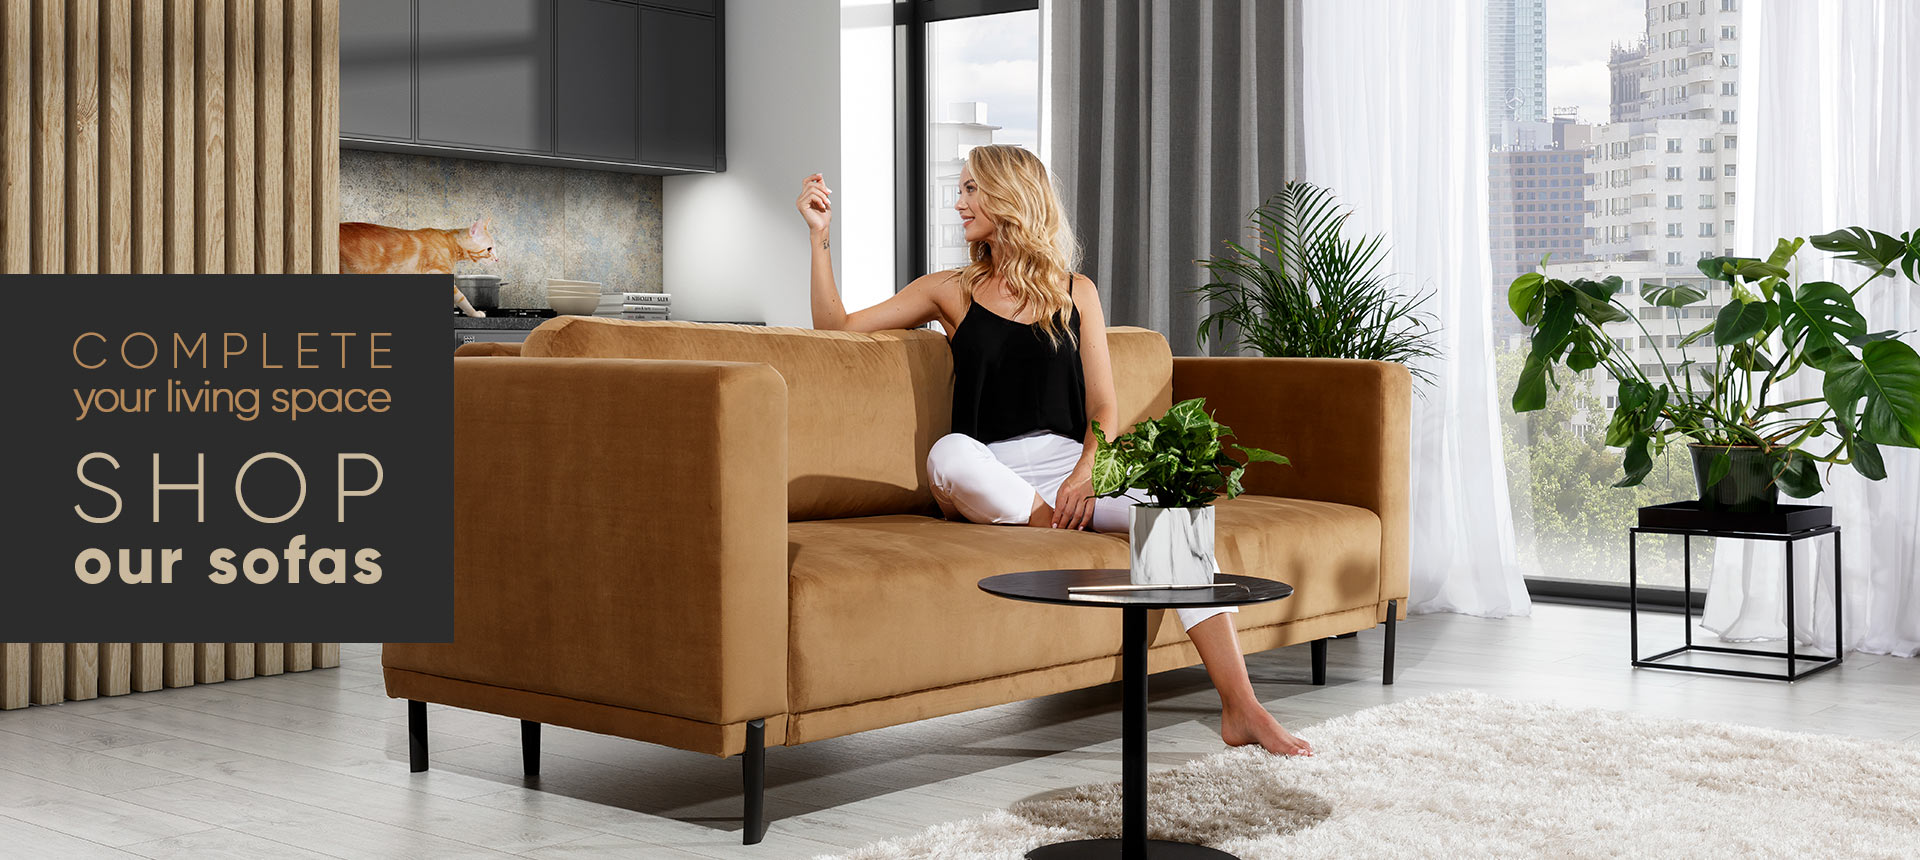 Complete your living space  - Online store Smart Furniture Mississauga